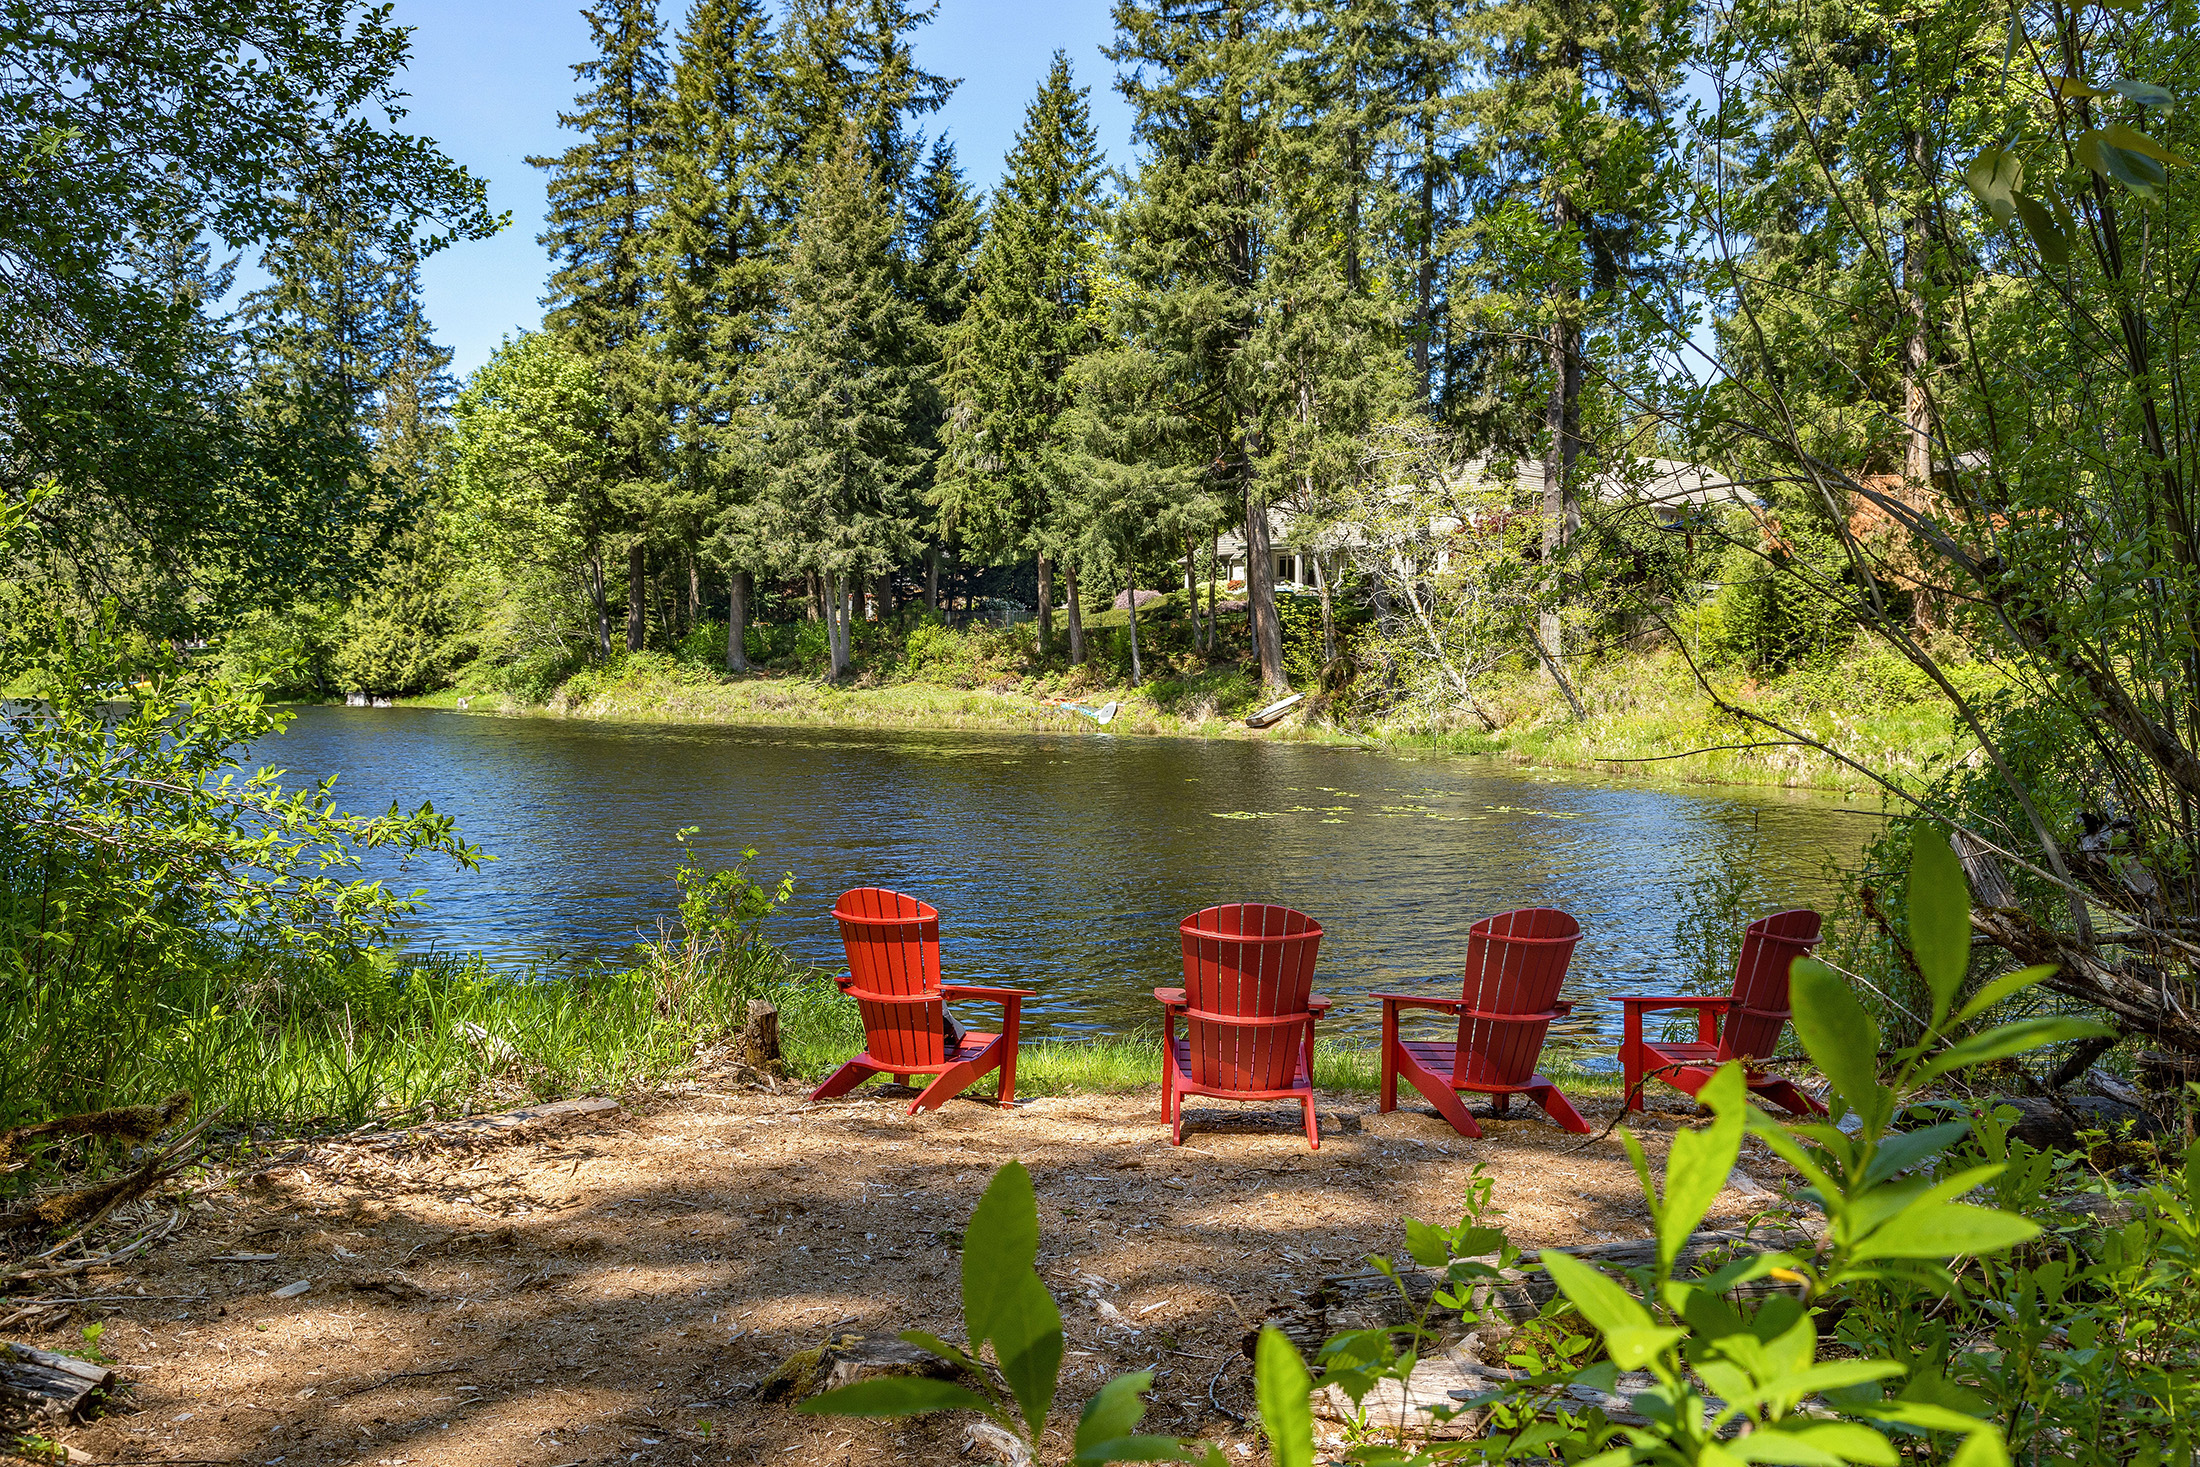 By the Numbers - The 15-month floor price for a residential waterfront home in North King County was $444,000, while the average price paid was $1.04 million.